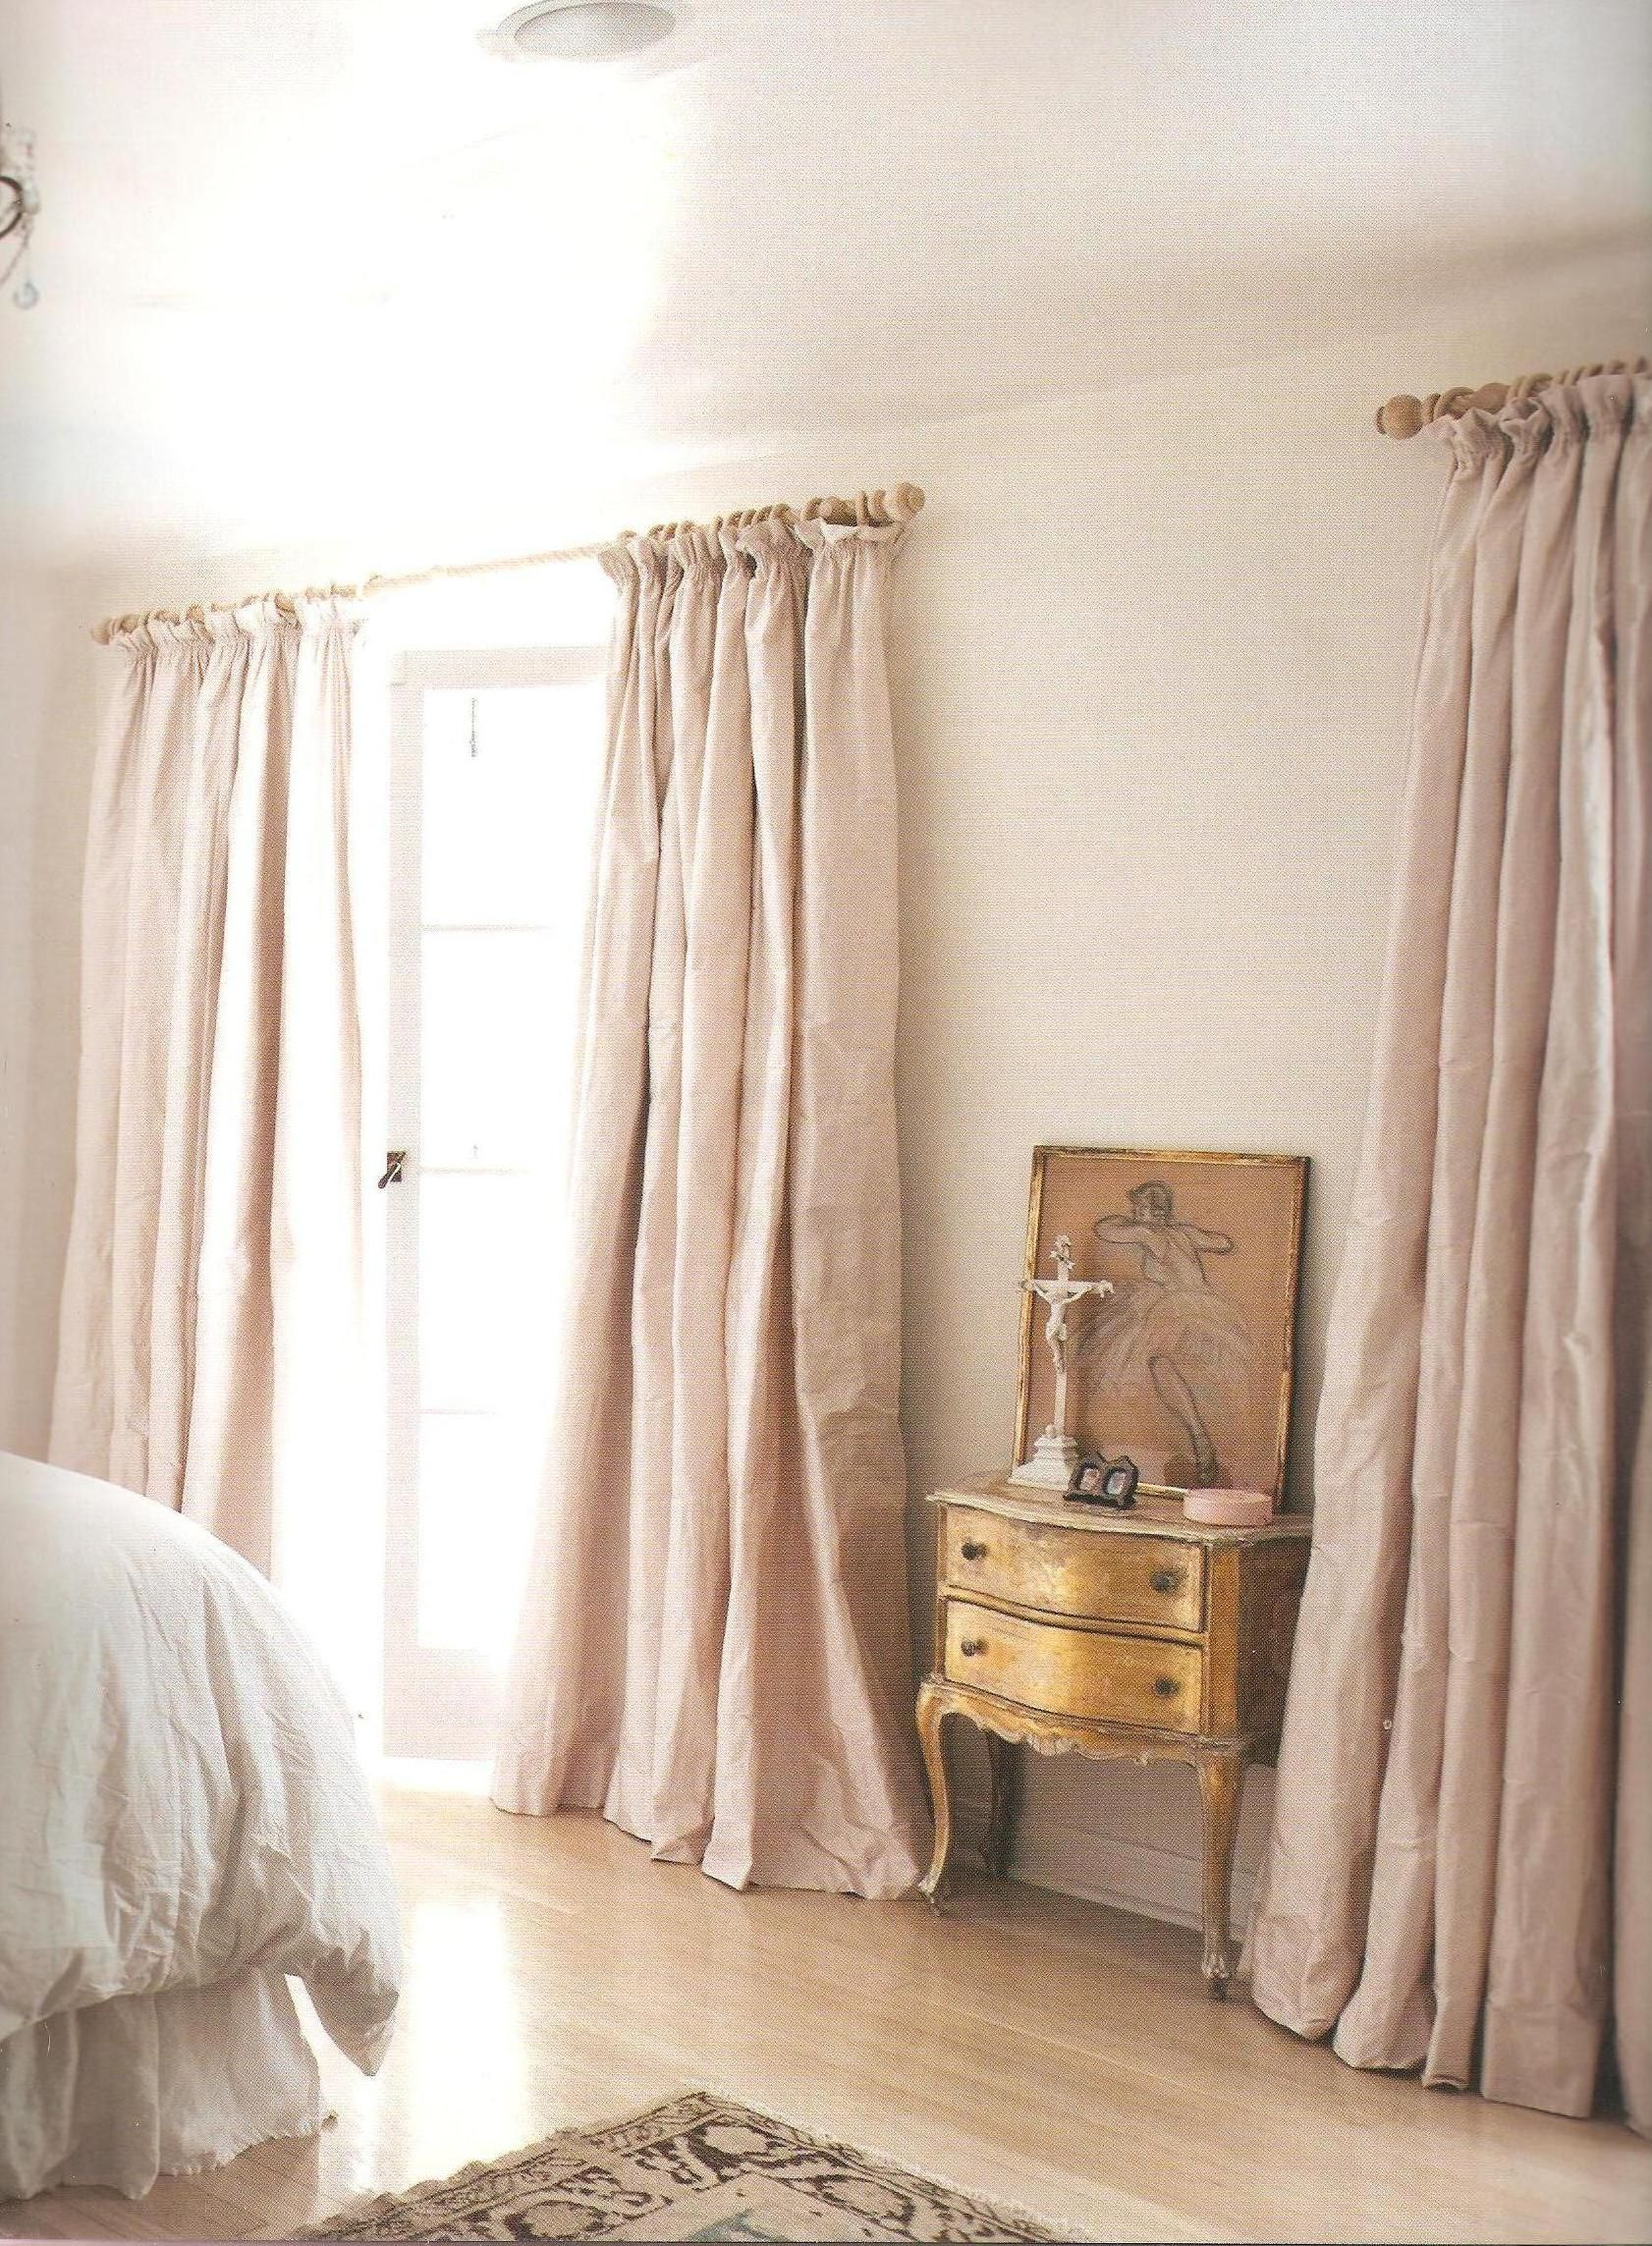 Feminine Dusky Pink Silk Curtains So Dreamy Home Furnishings Dreamy Things In 2019